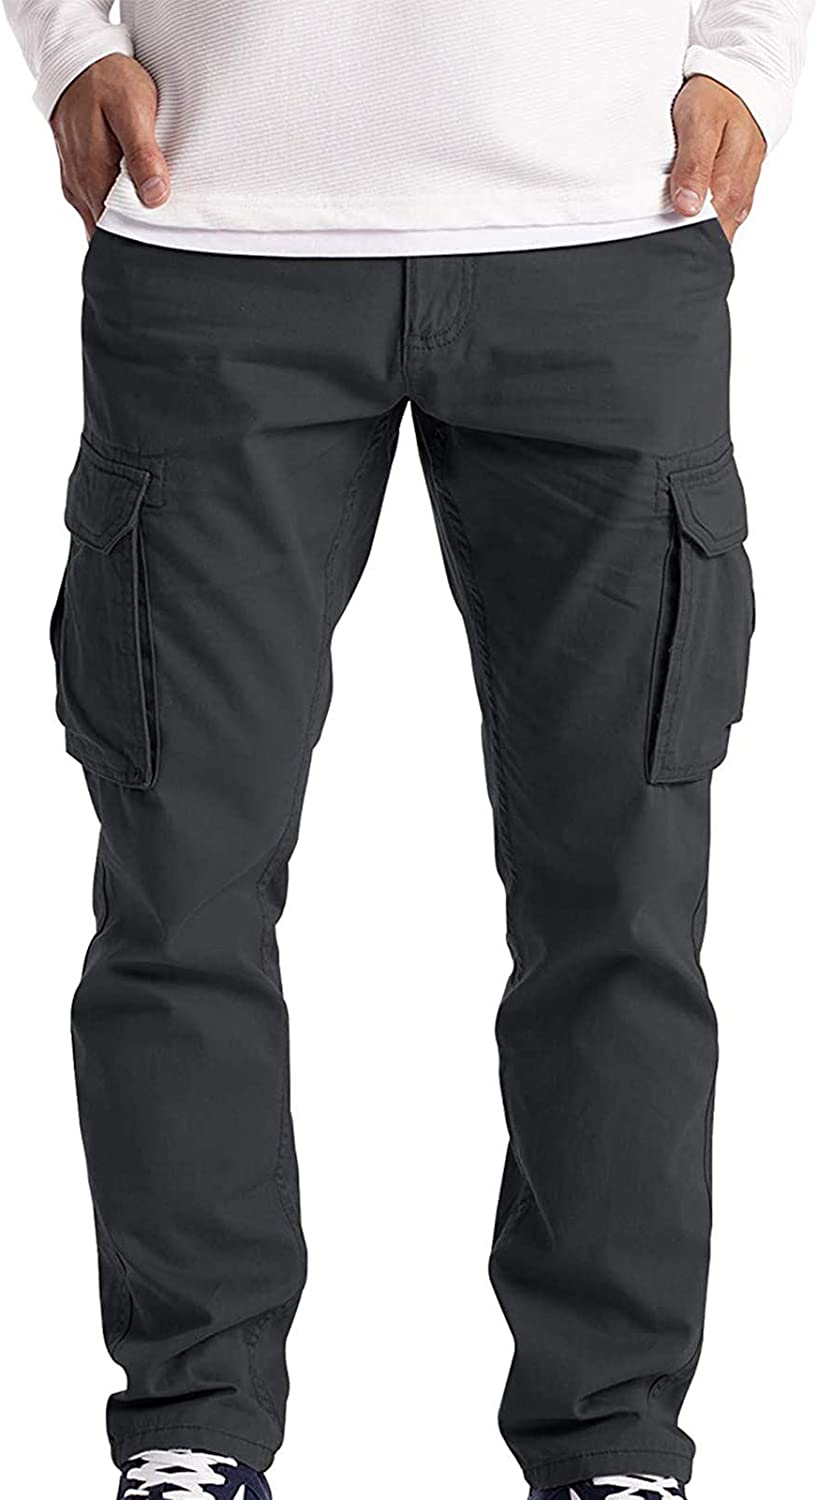 Cargo Pants for Men,Men's Casual Relaxed Fit Multi-Pockets Hiking Pant Combat Safety Cargo Trousers Outdoor Travel Pants